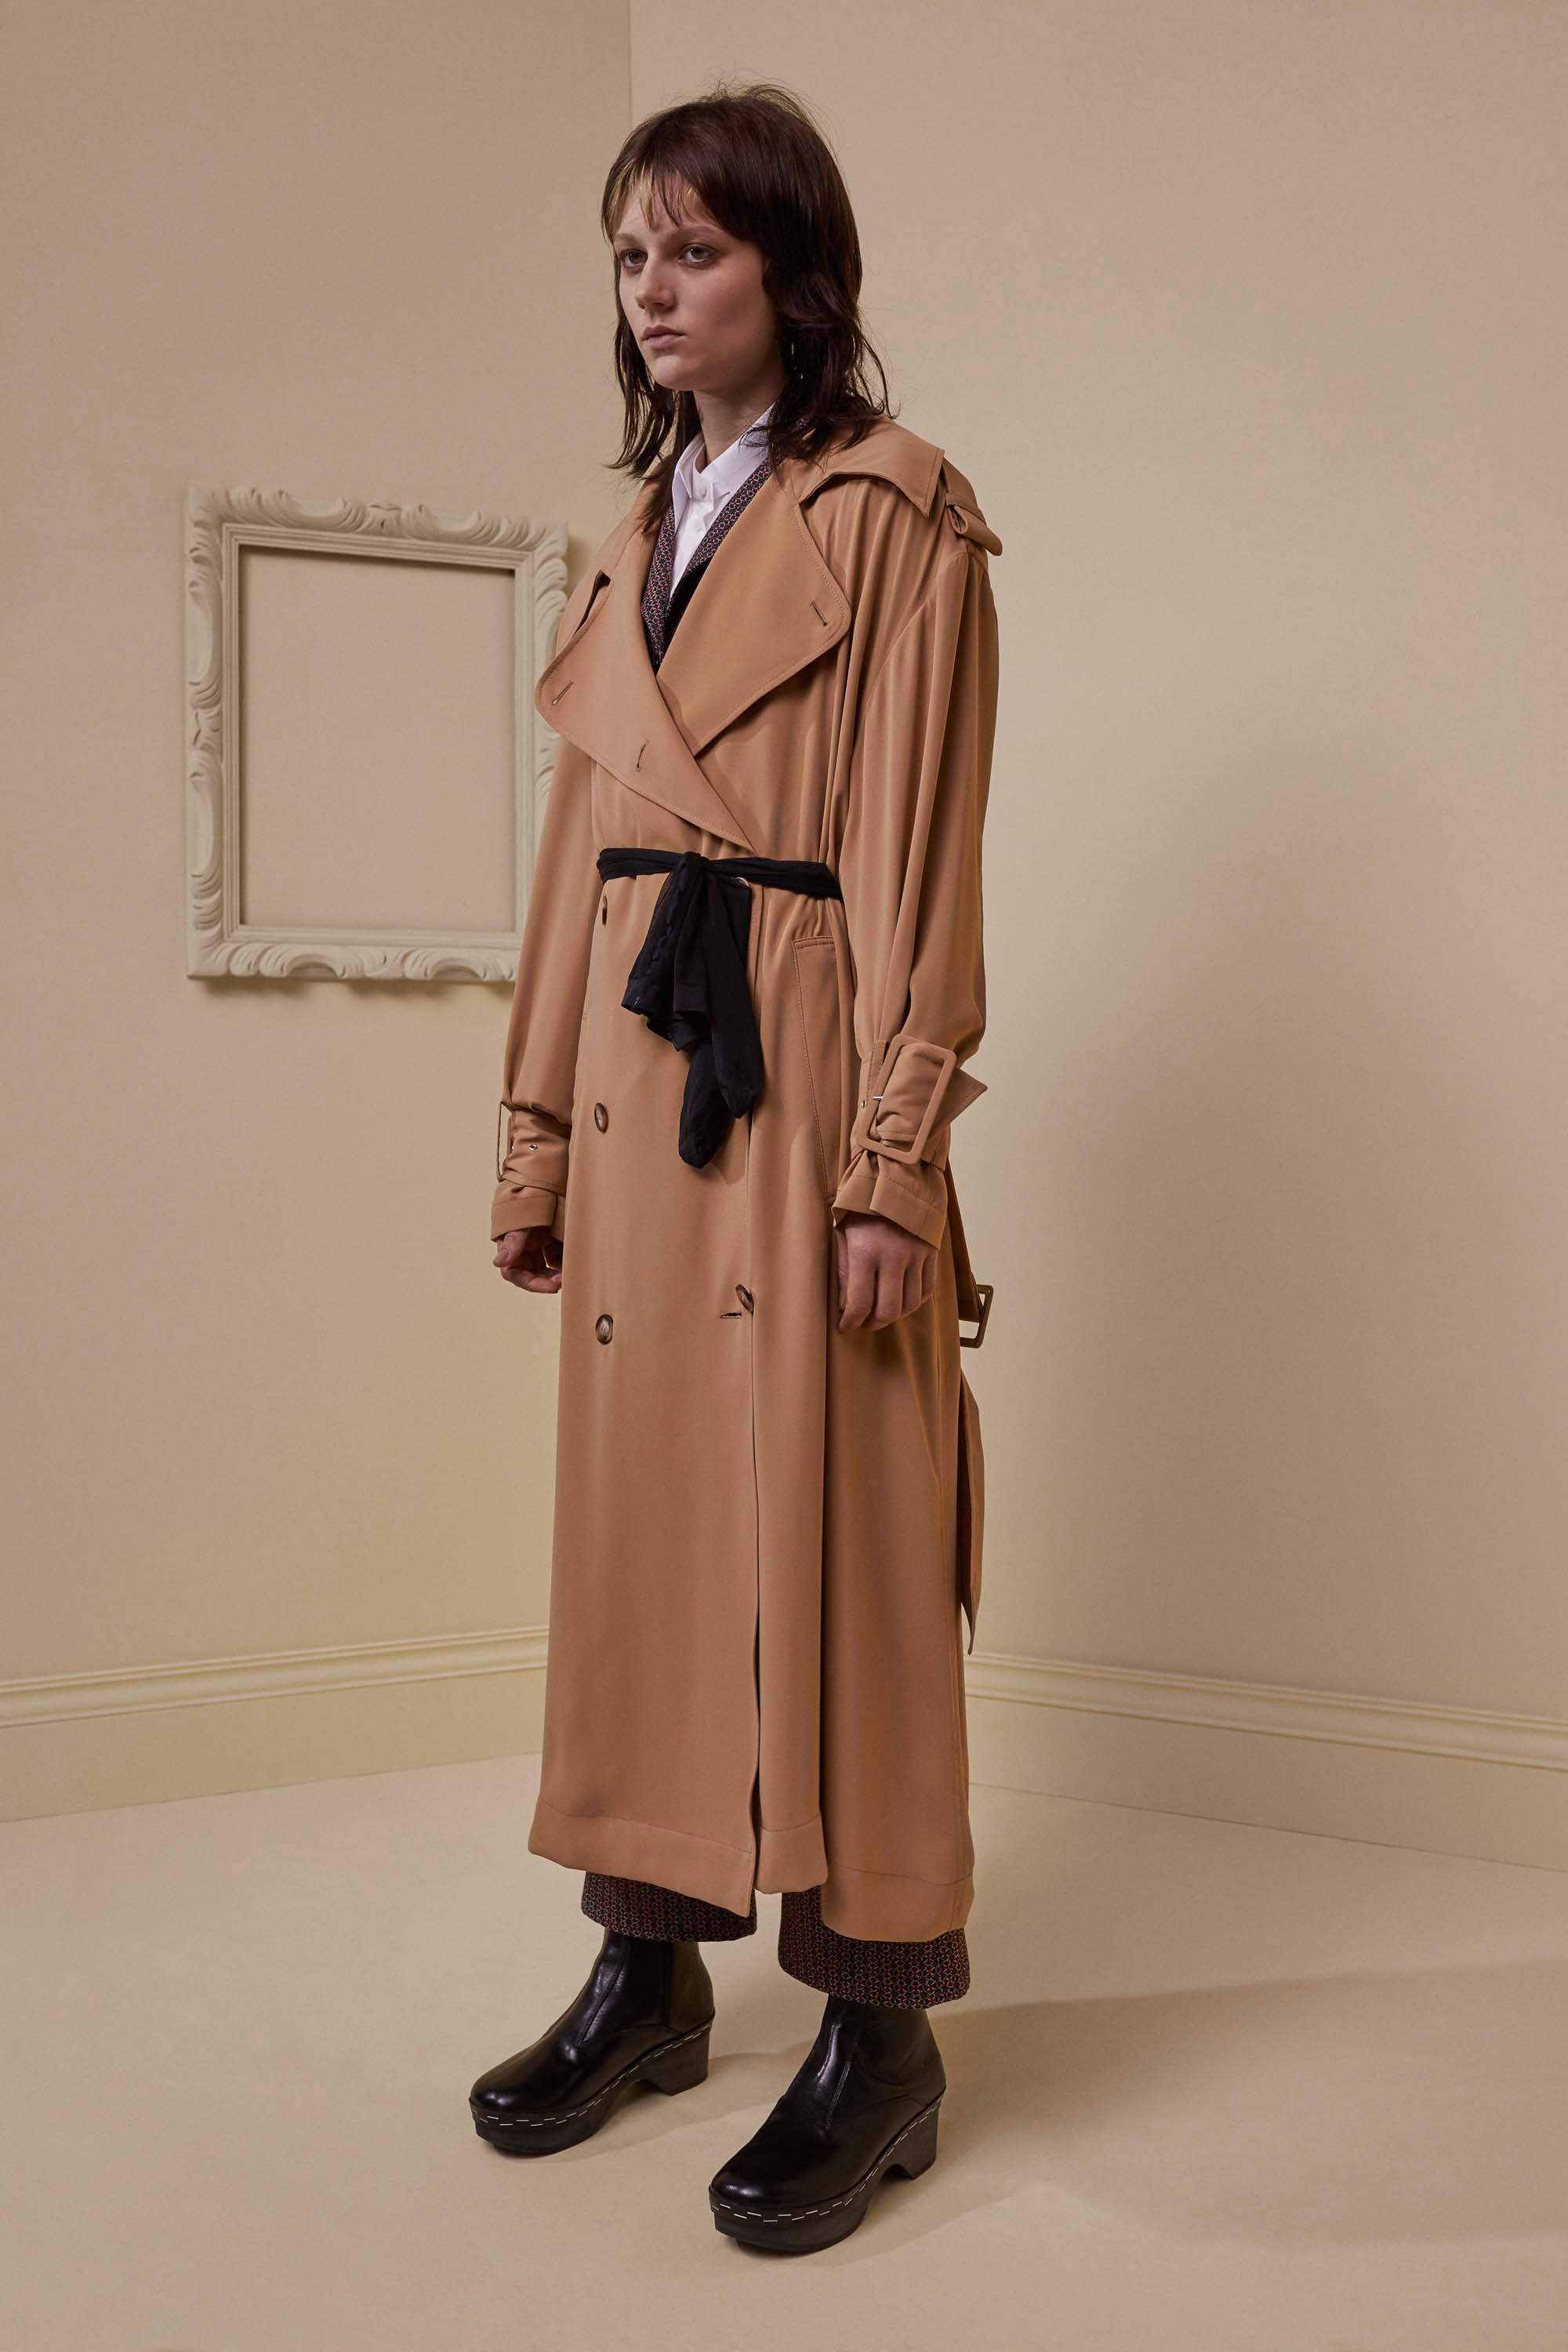 mm6-maison-margiela-pre-fall-2017-fashion-show-the-impression-12